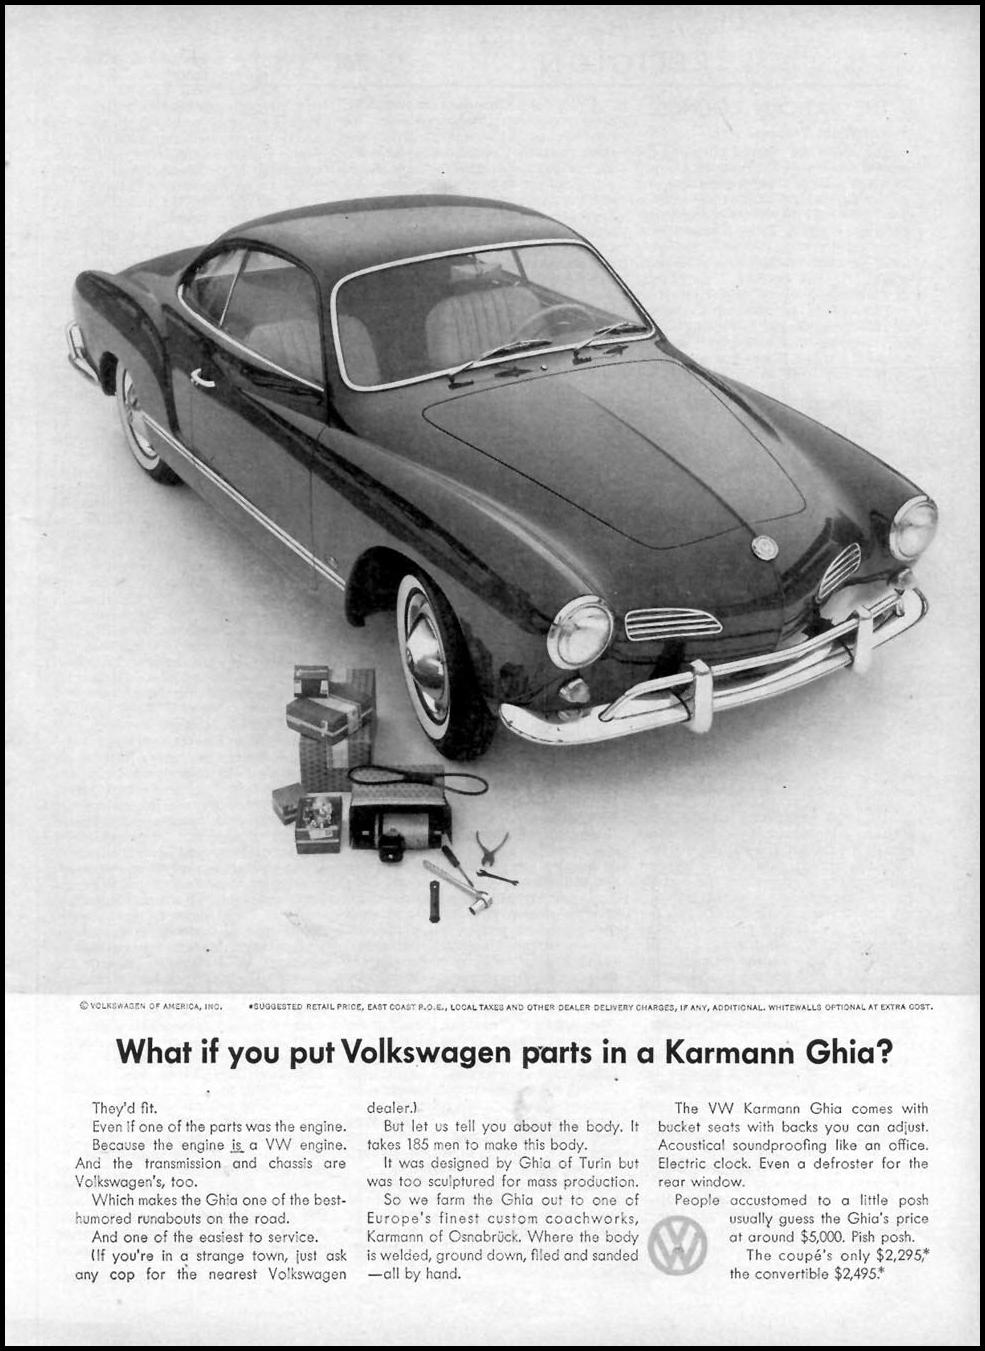 VOLKSWAGEN AUTOMOBILES